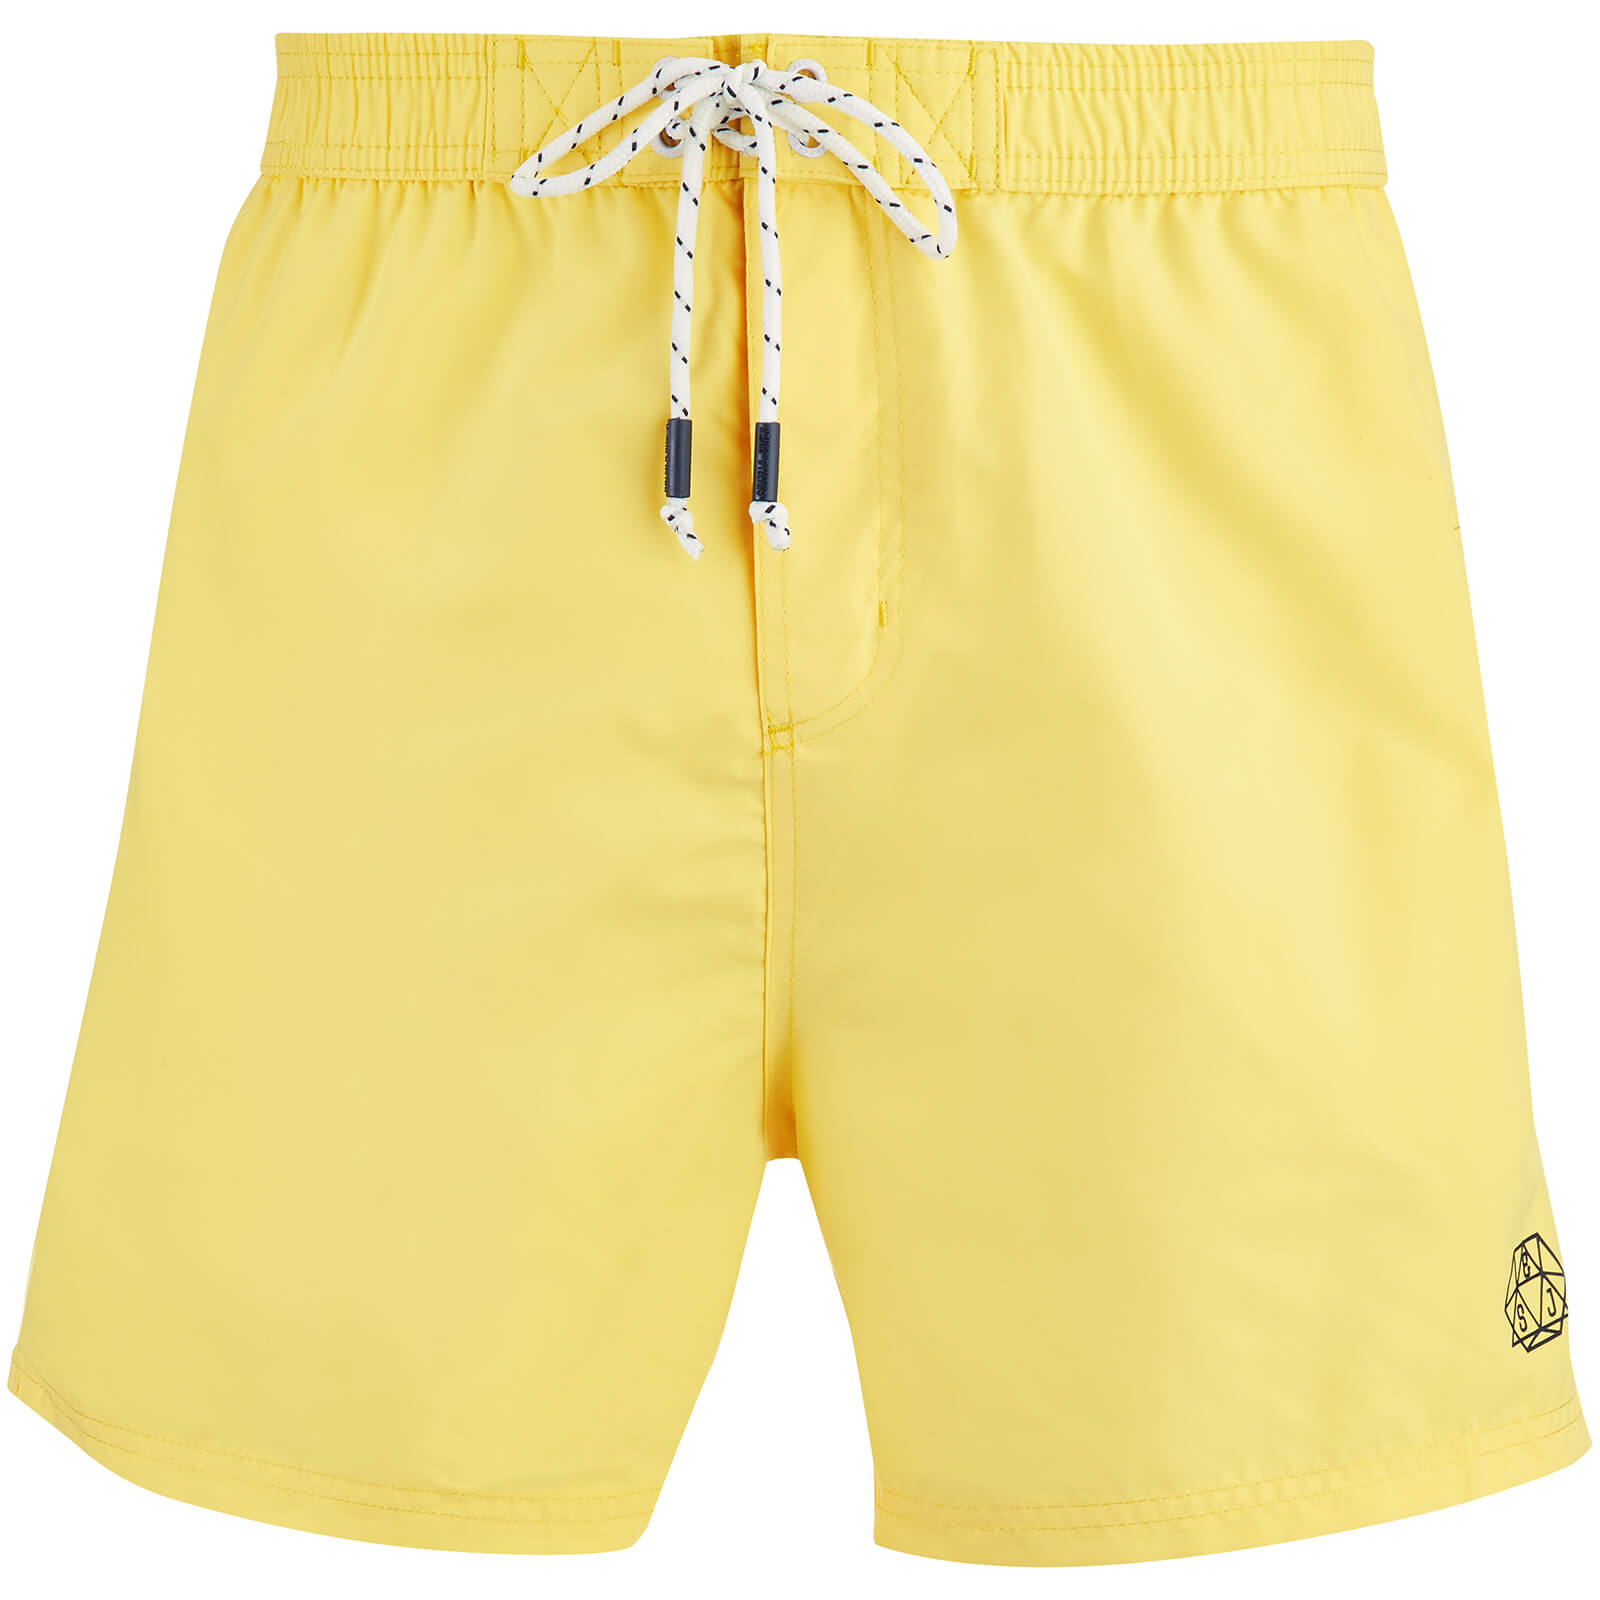 Short de Bain Antinode Smith & Jones -Jaune